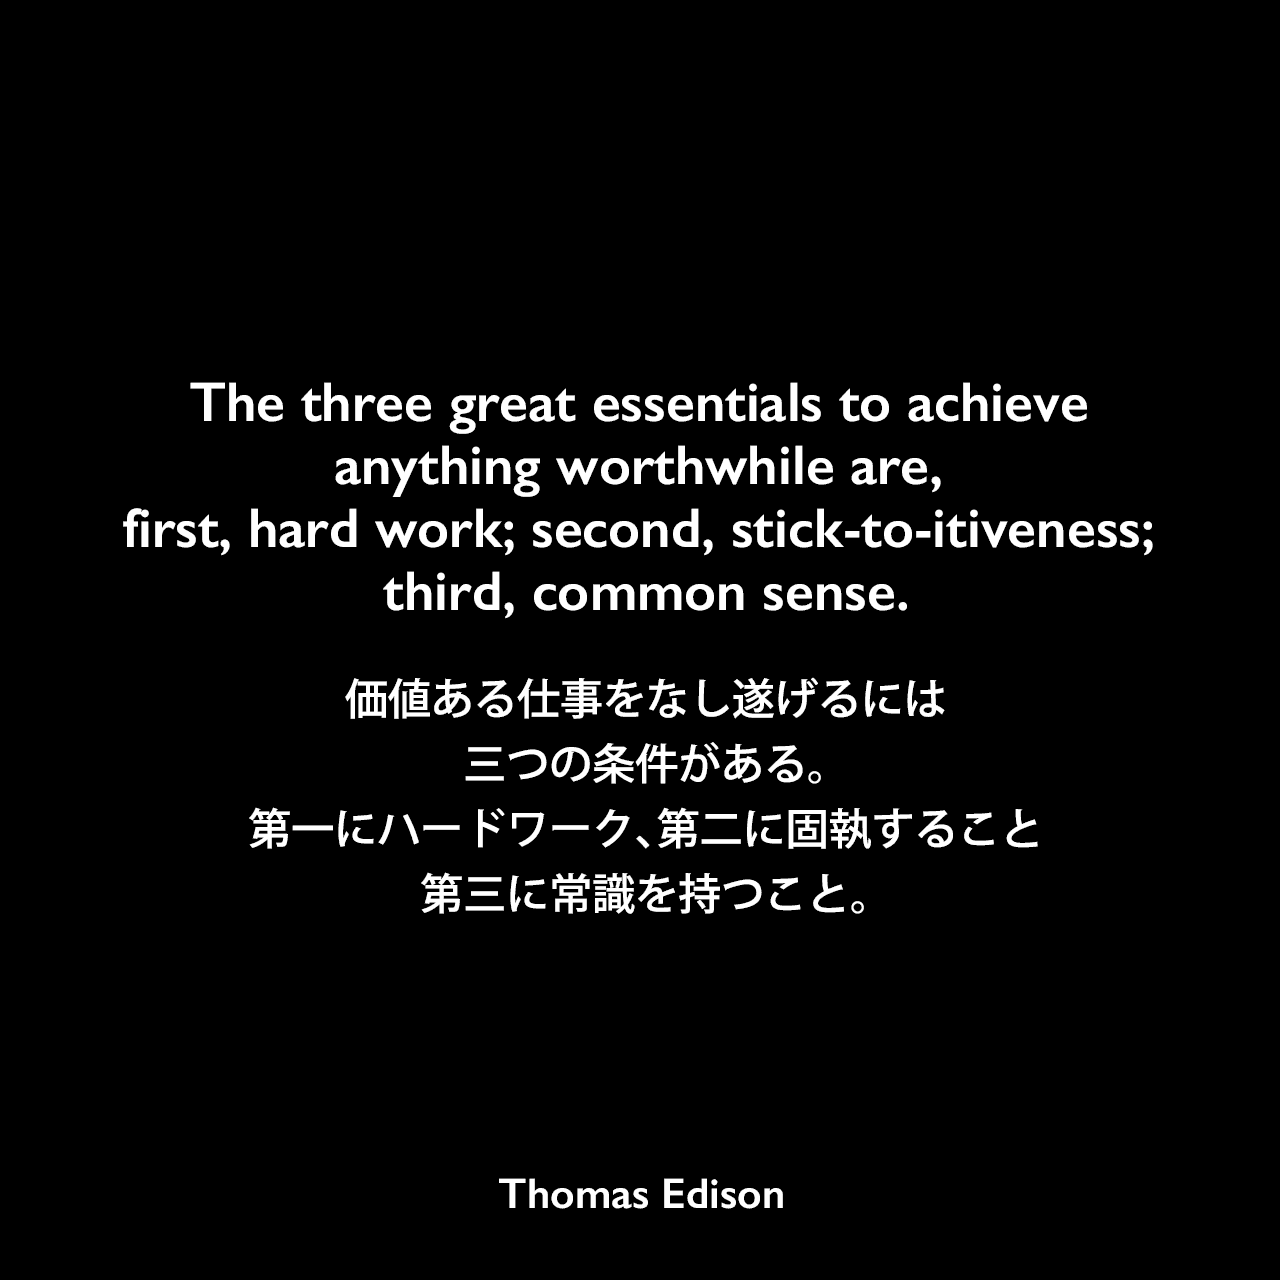 The three great essentials to achieve anything worthwhile are, first, hard work; second, stick-to-itiveness; third, common sense.価値ある仕事をなし遂げるには三つの条件がある。第一にハードワーク、第二に固執すること、第三に常識を持つこと。Thomas Edison